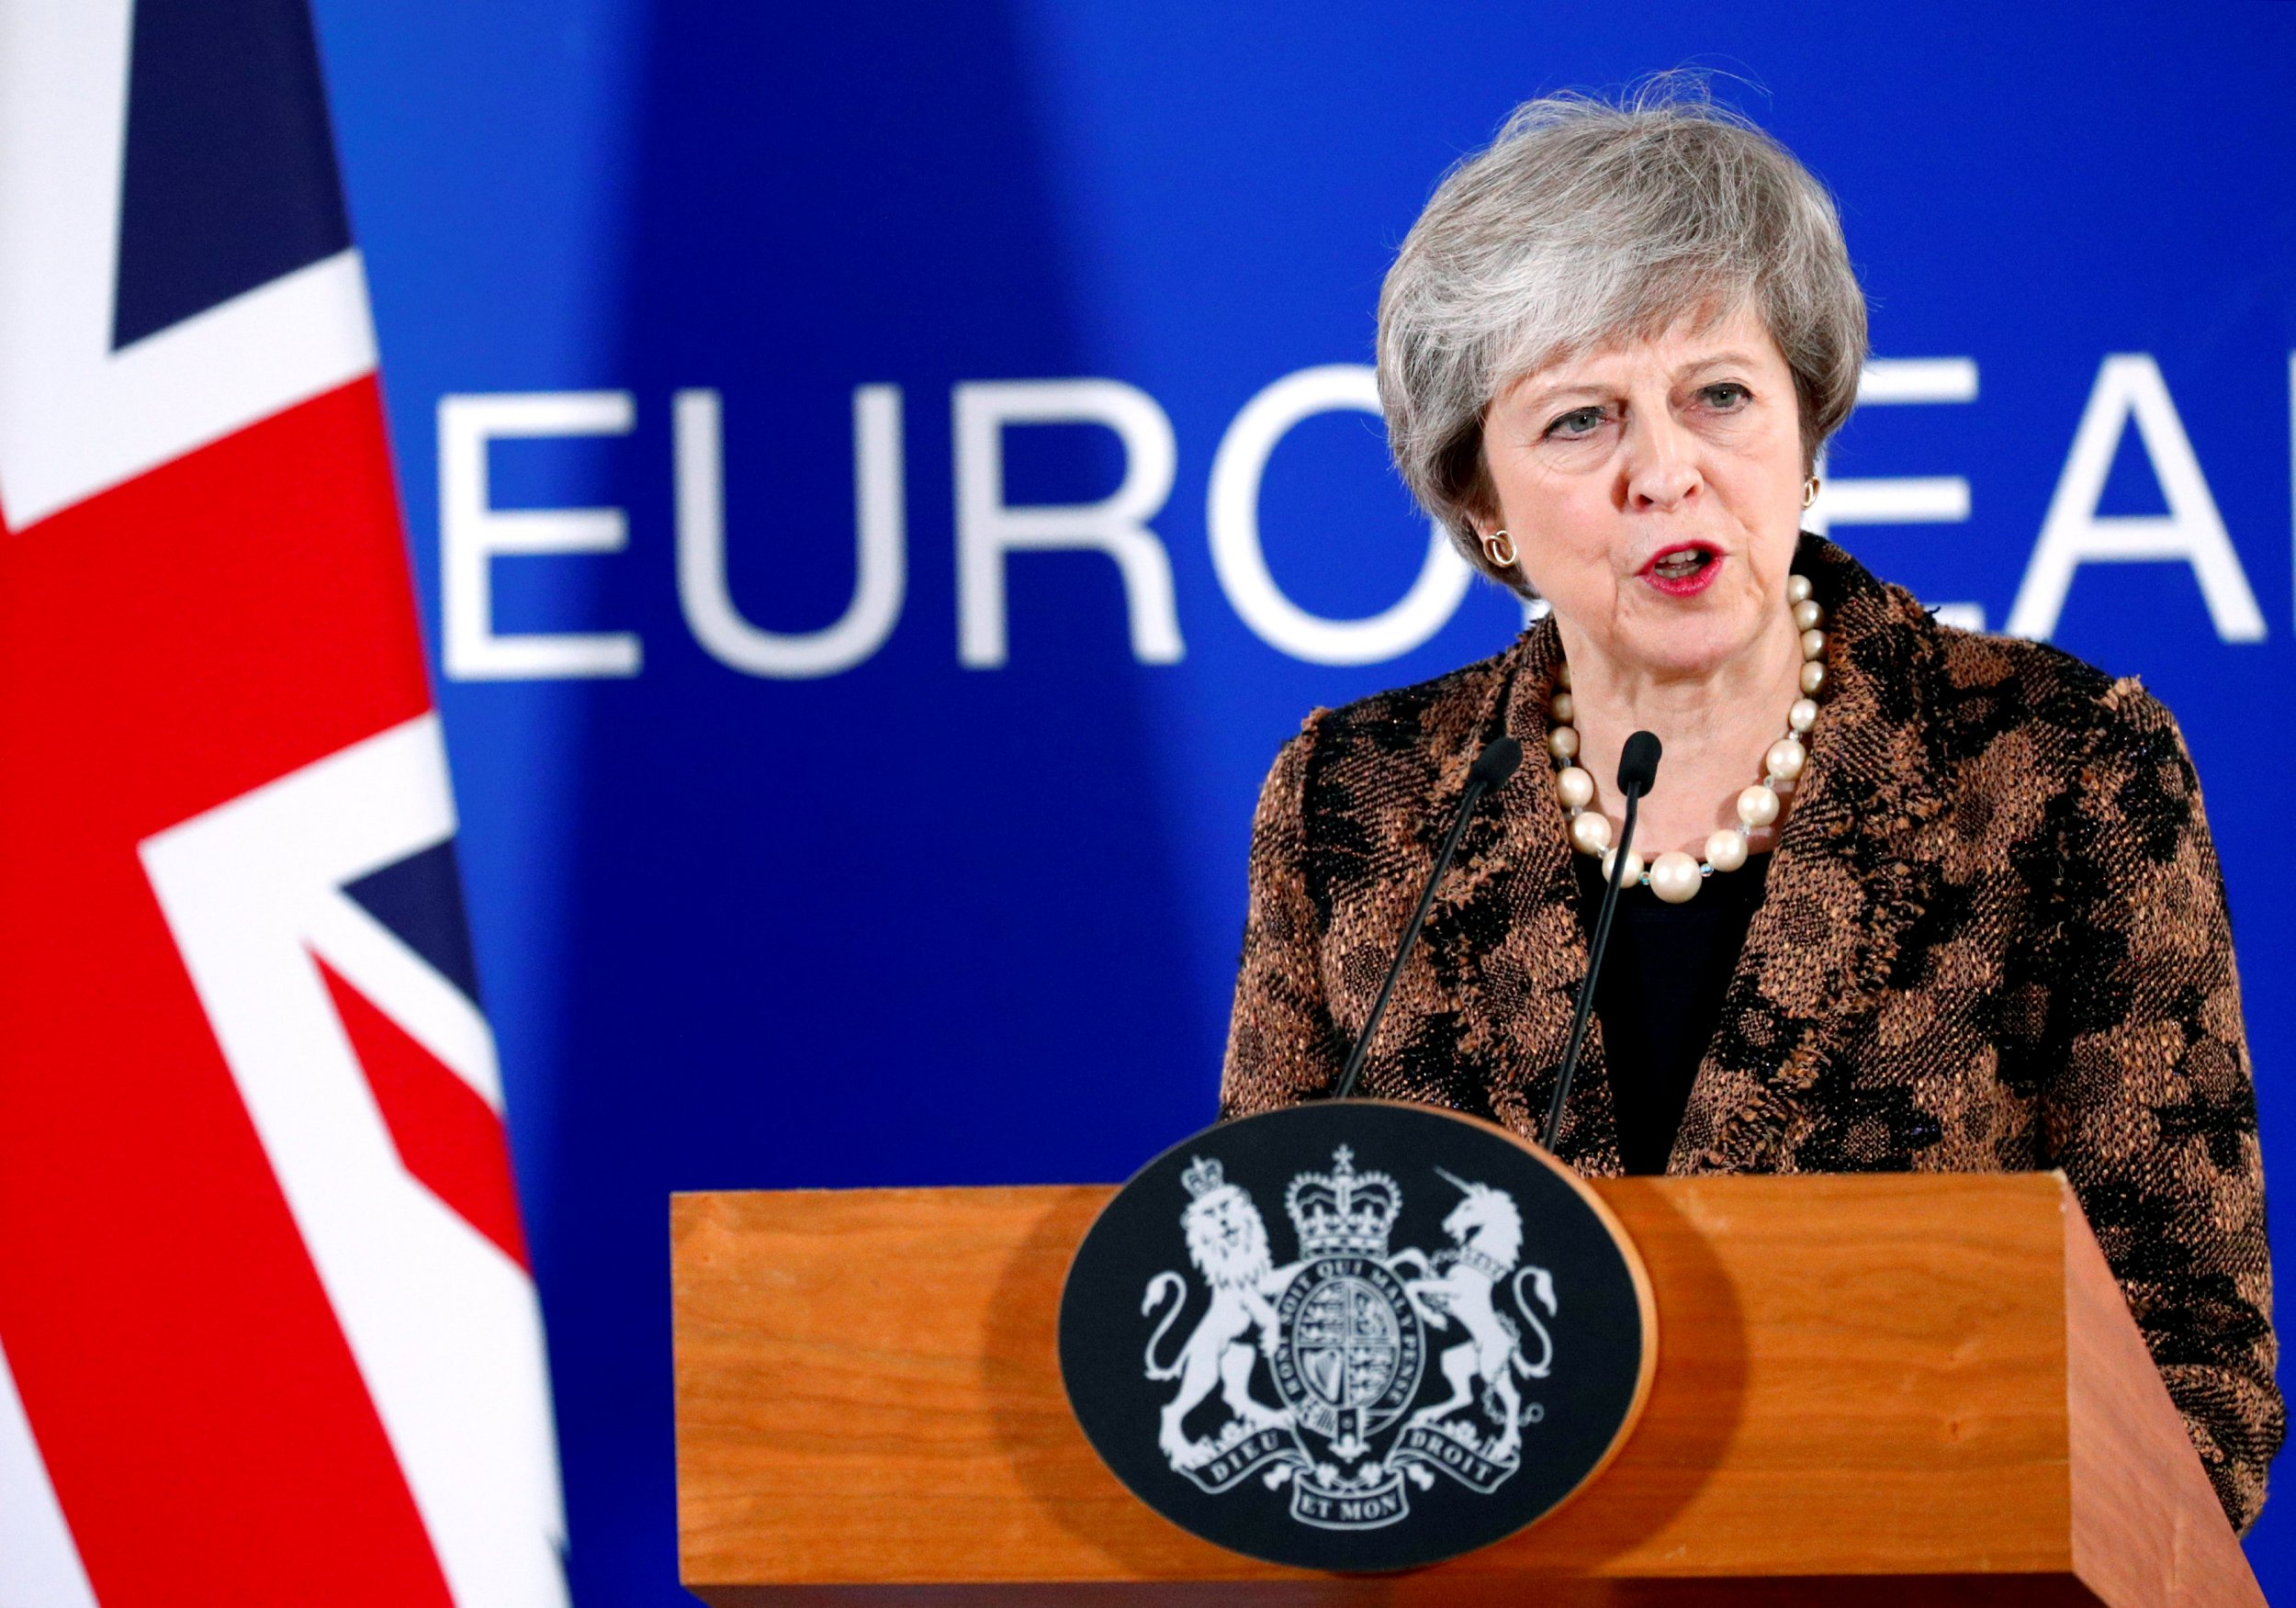 British Prime Minister Theresa May attends a news conference after a European Union leaders summit in Brussels, Belgium December 14, 2018. REUTERS/Francois Lenoir